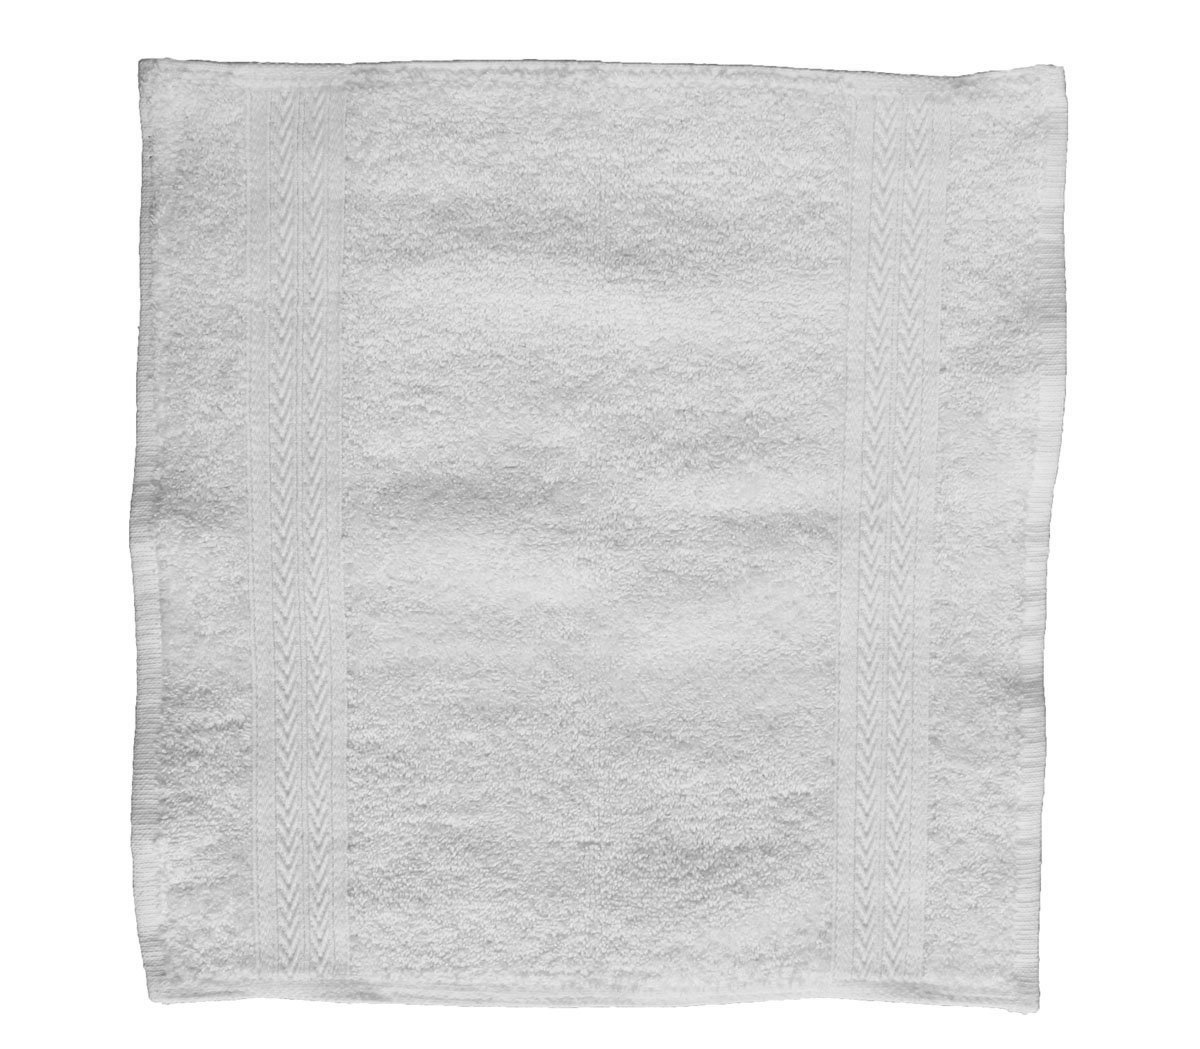 Washcloths –13x13 Inches, White, 12 Pack, 100% Cotton, Heavy Duty, Durable, Excellent Craftsmanship, Highly Absorbent, 1.6 lbs per dozen, Multipurpose, Fingertip Towel – by Pacific Linens (12)